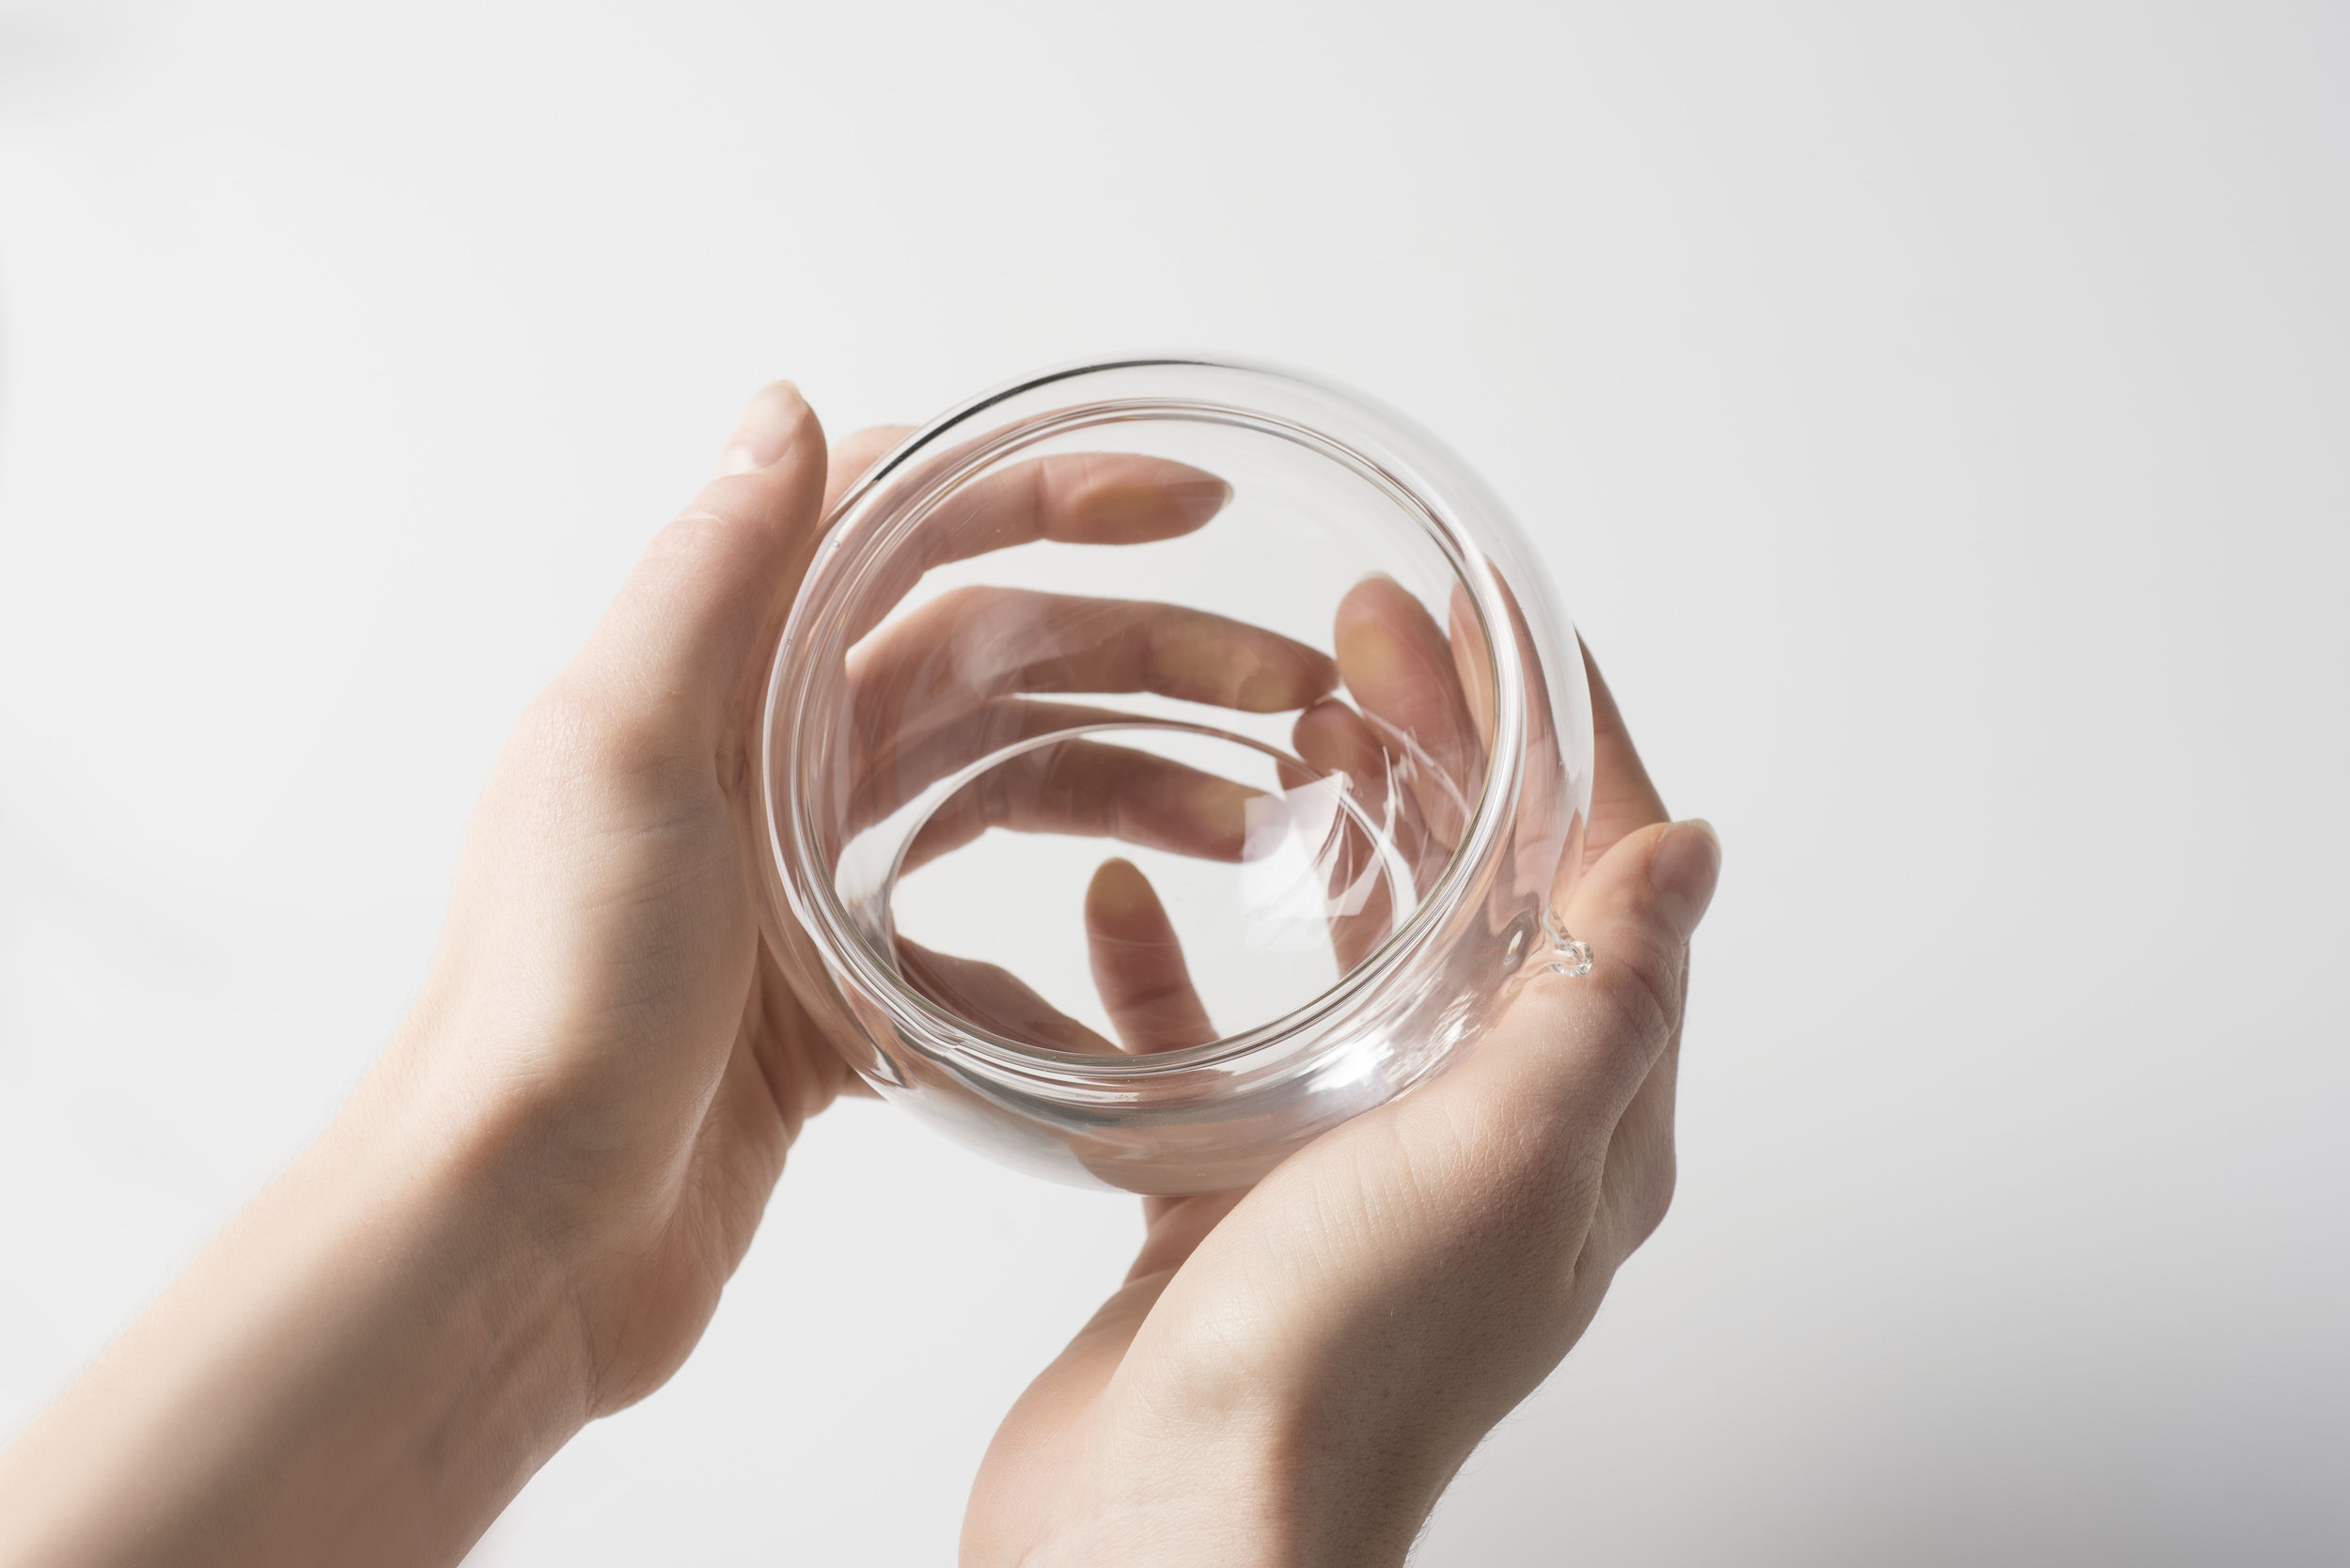 Water enclosed in borosilicate glass